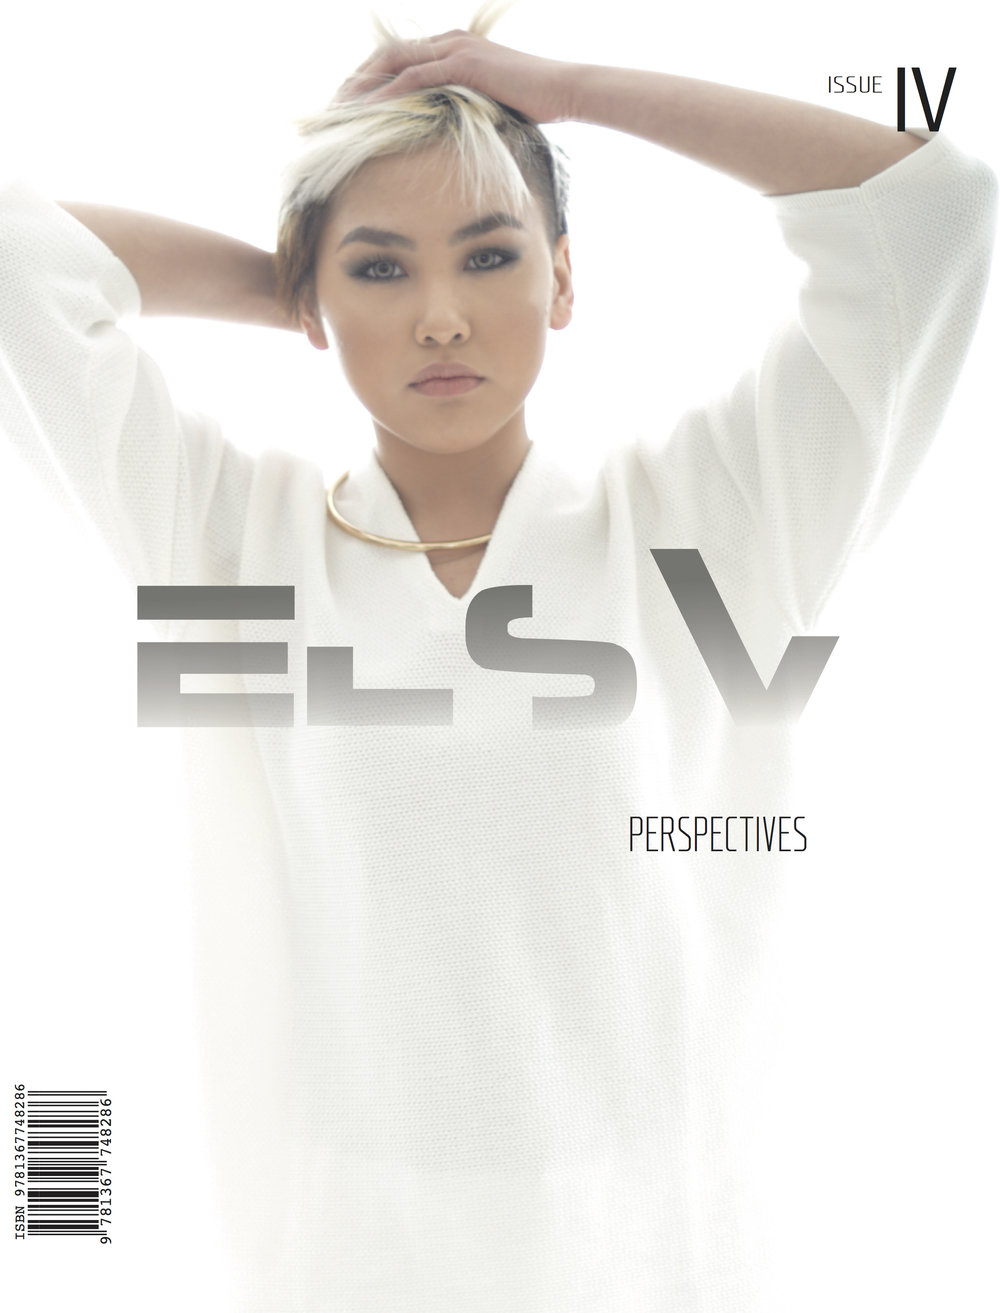 Issue iv - Perspectives - cover model chantal jo